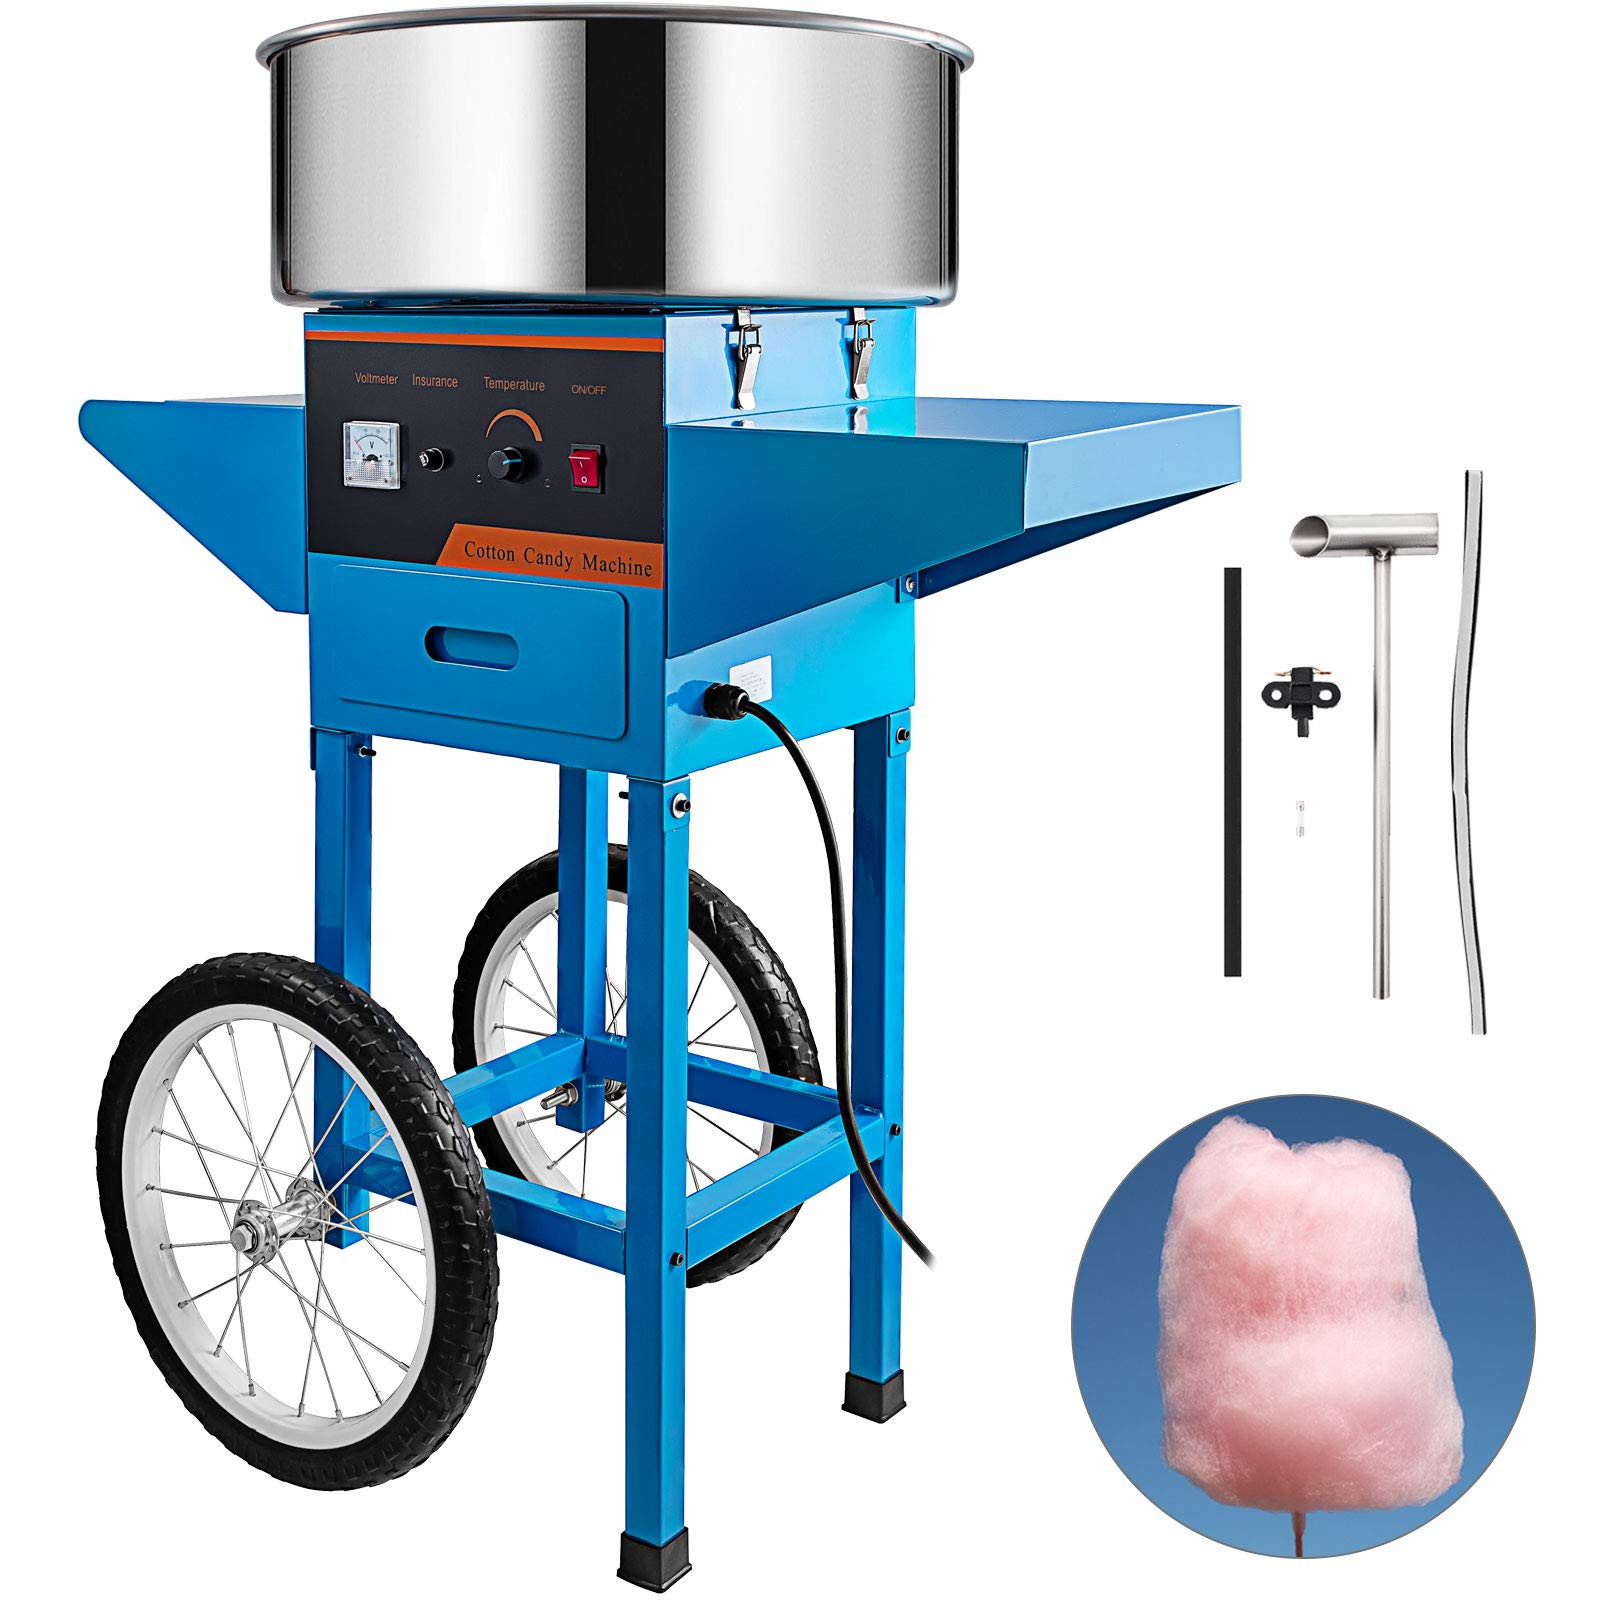 Happybuy Commercial Cotton Candy Machine with Cart Blue 110V Stainless Steel Electric Candy Floss Maker with Cart Perfect for Various Parties